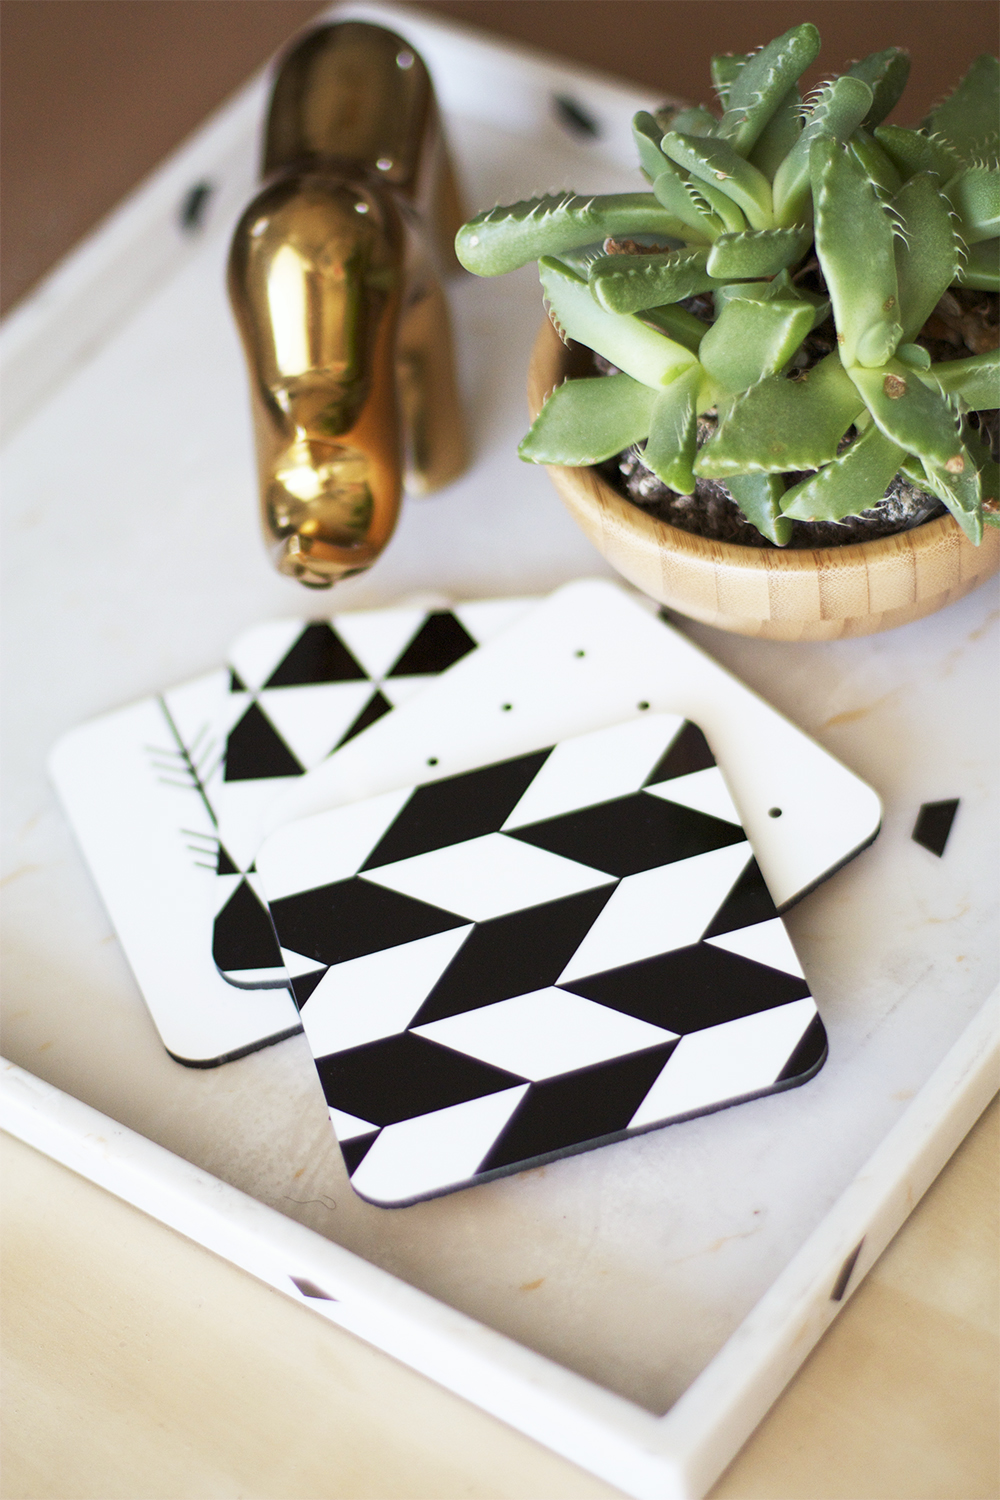 DIY Black and White Coasters